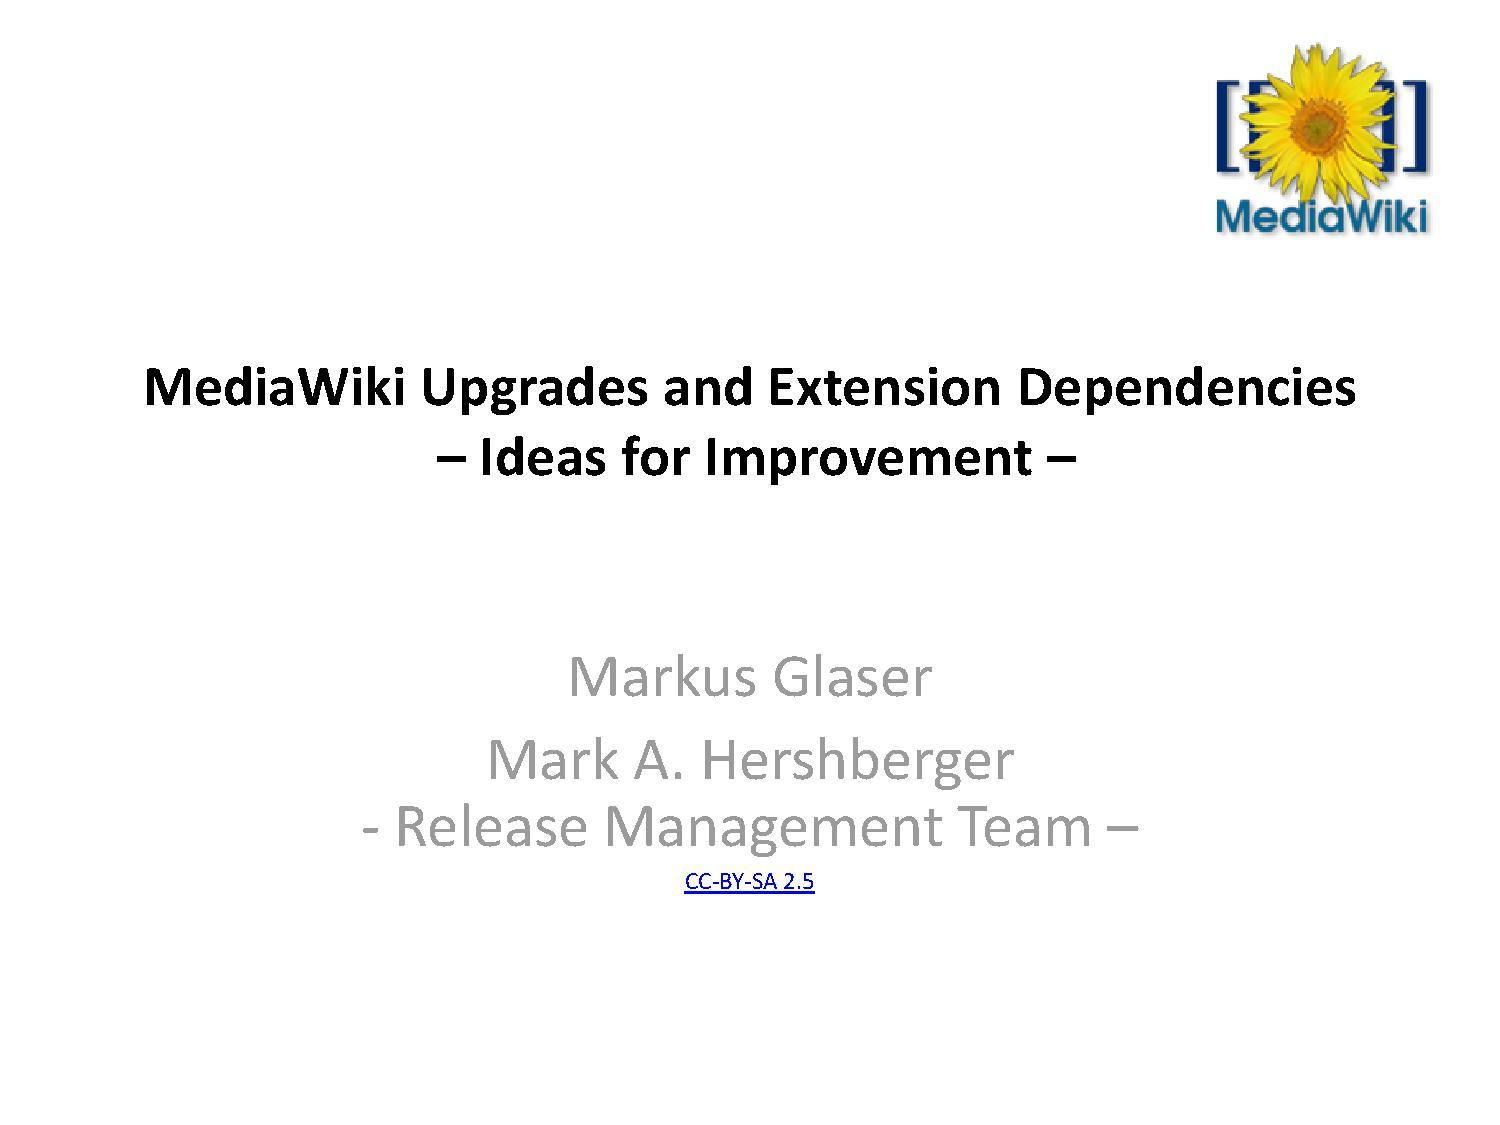 Improving dependency management and easing upgrades.pdf